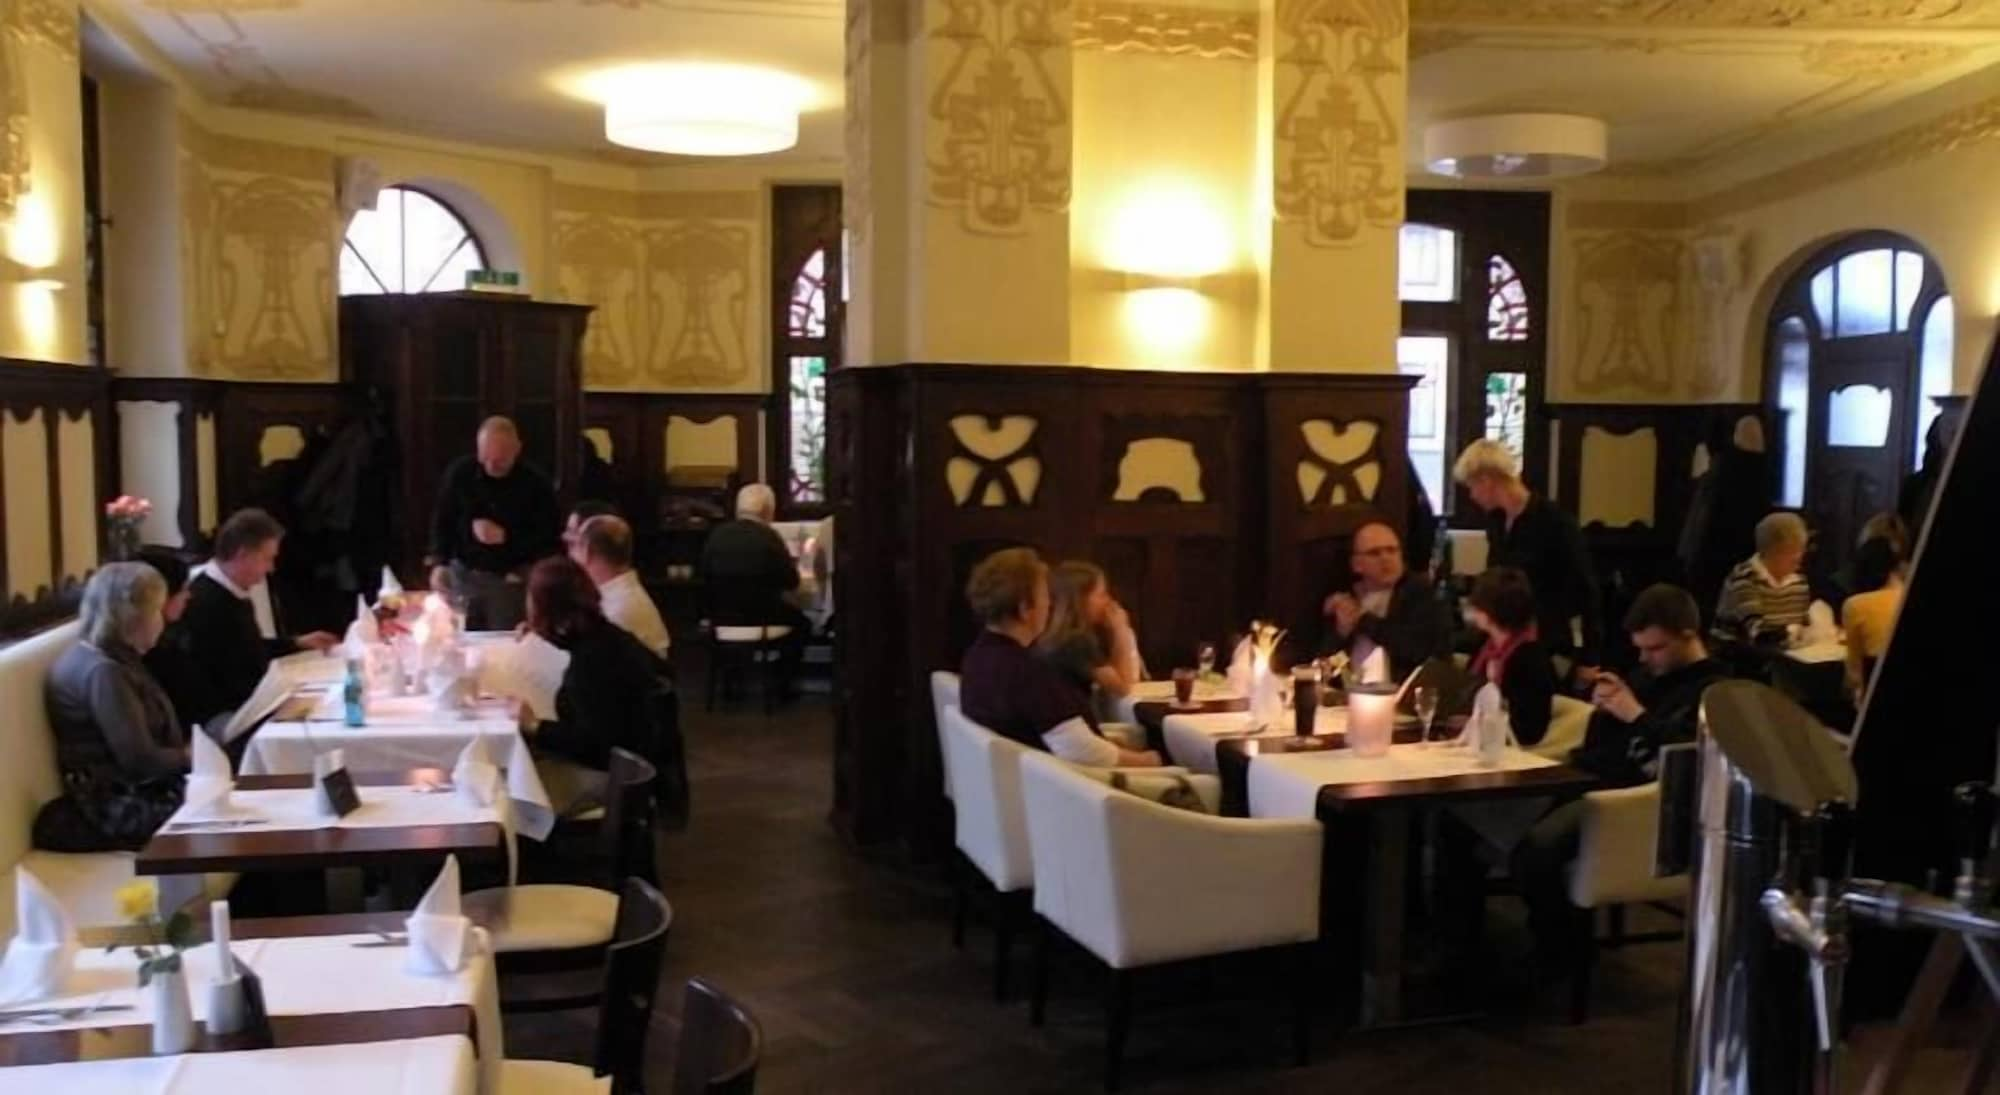 da Marcello Restaurant & Pension, Leipzig